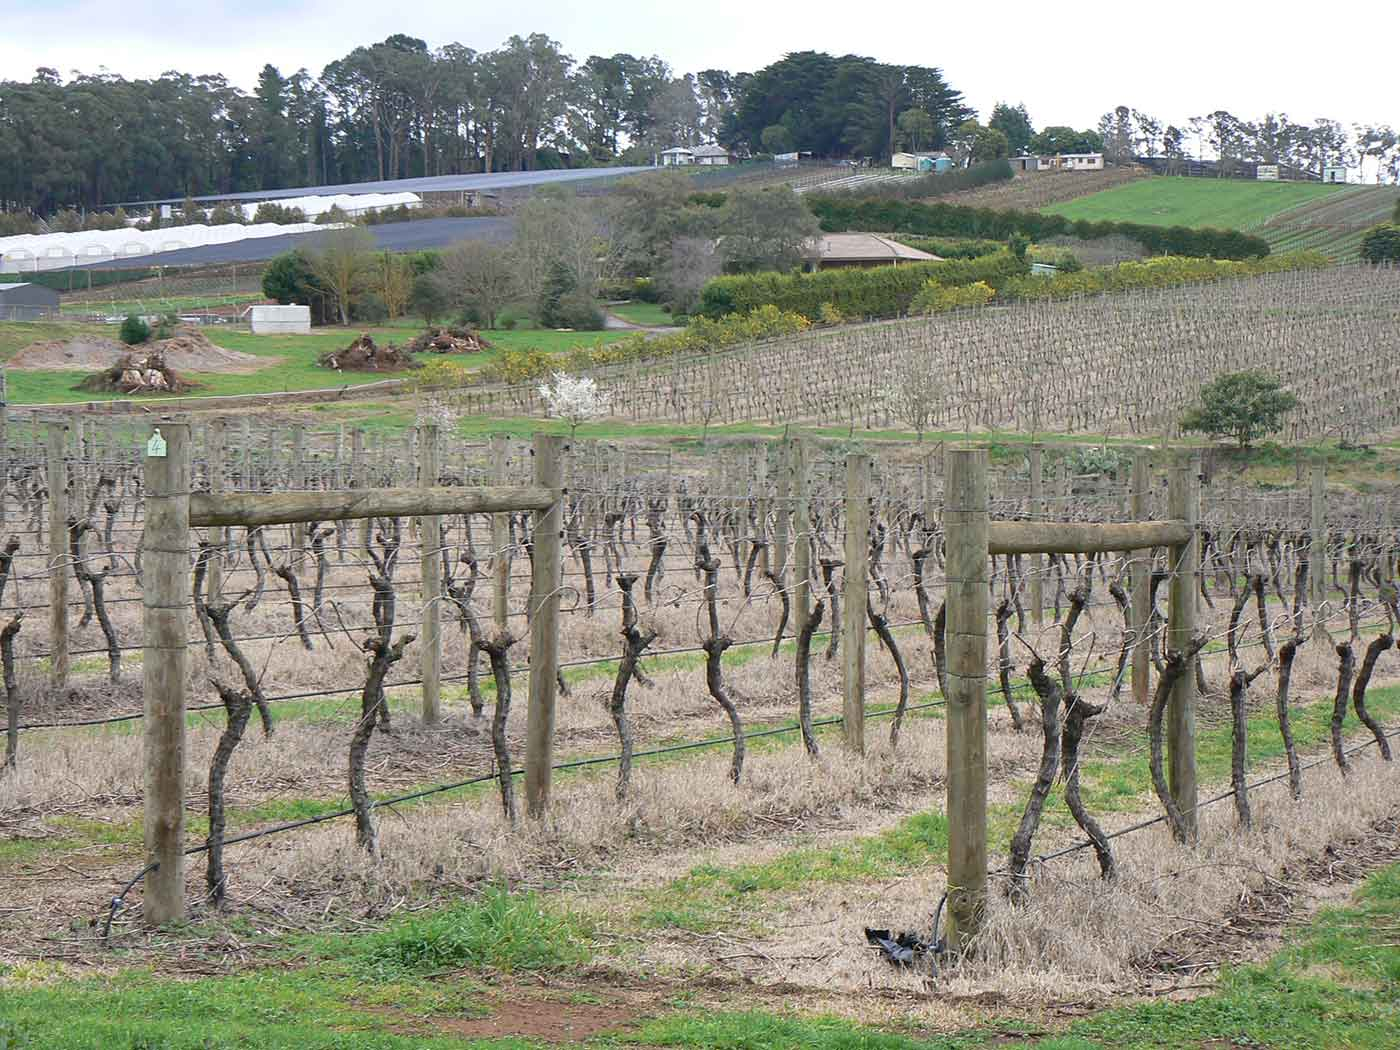 A colour photograph of vineyards and other crops.